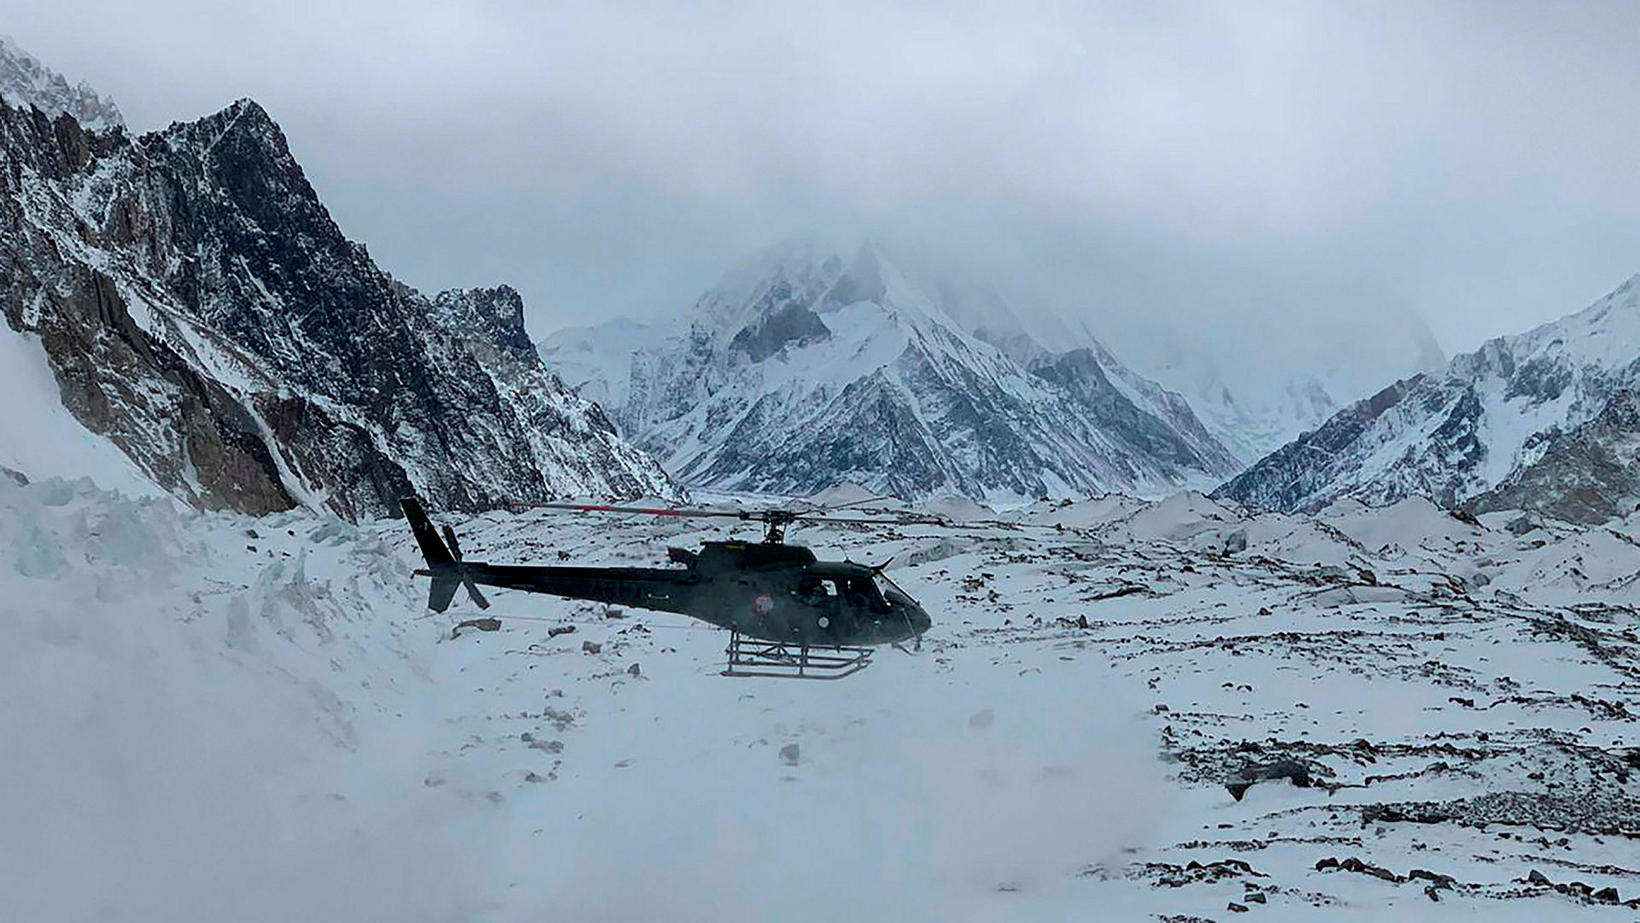 From K2.